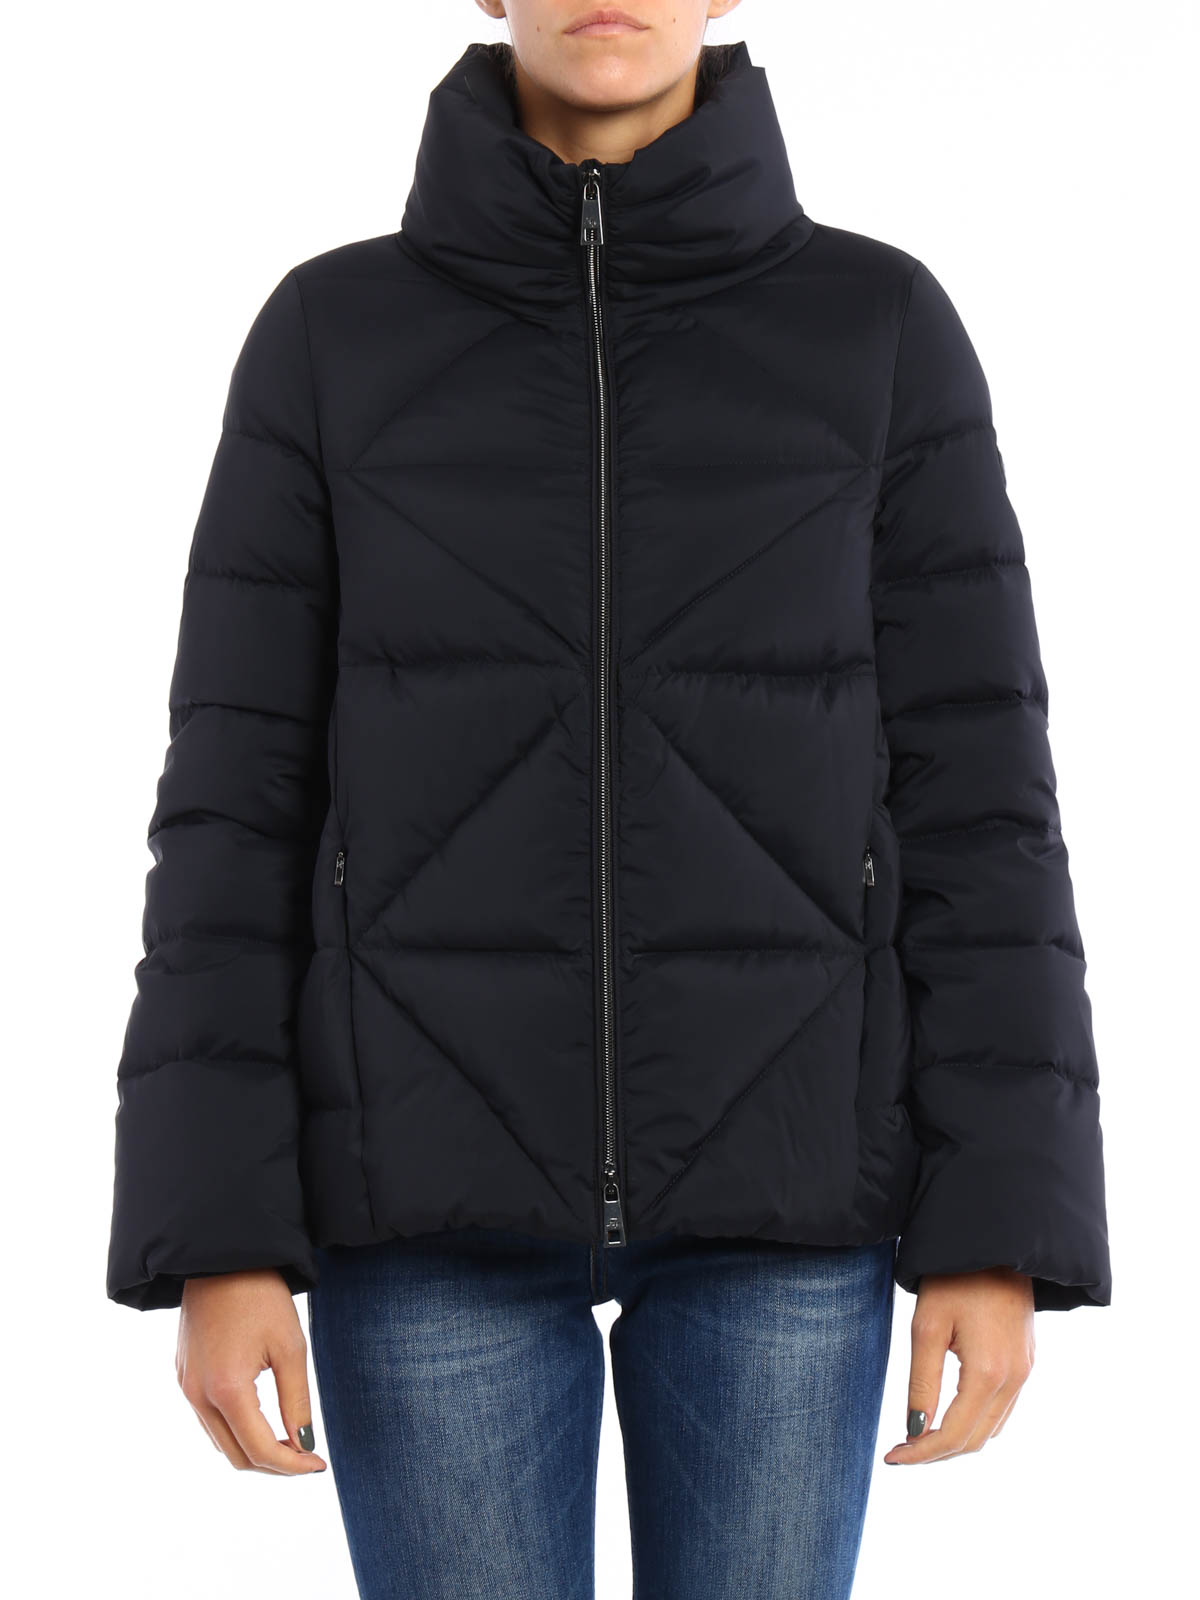 new arrivals 005c0 46f03 Fay - A-line quilted and padded jacket - padded jackets ...